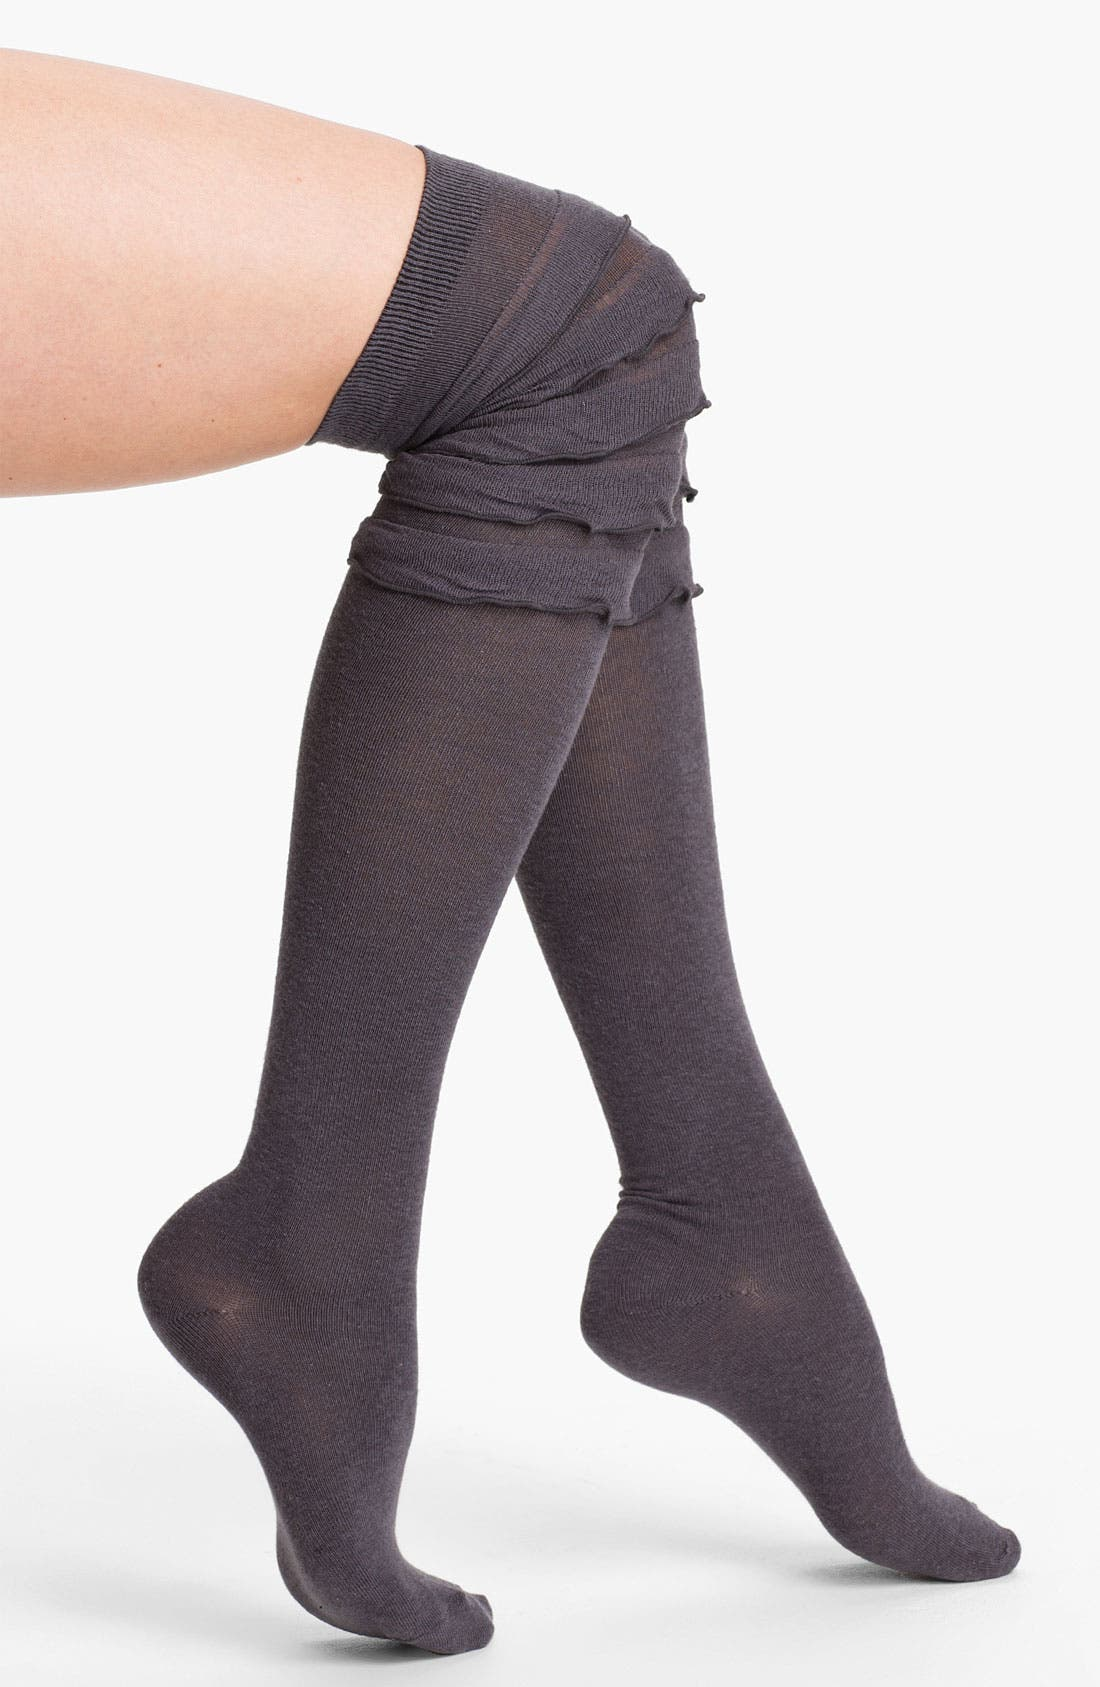 Alternate Image 1 Selected - Free People Ruffle Over-the-Knee Socks